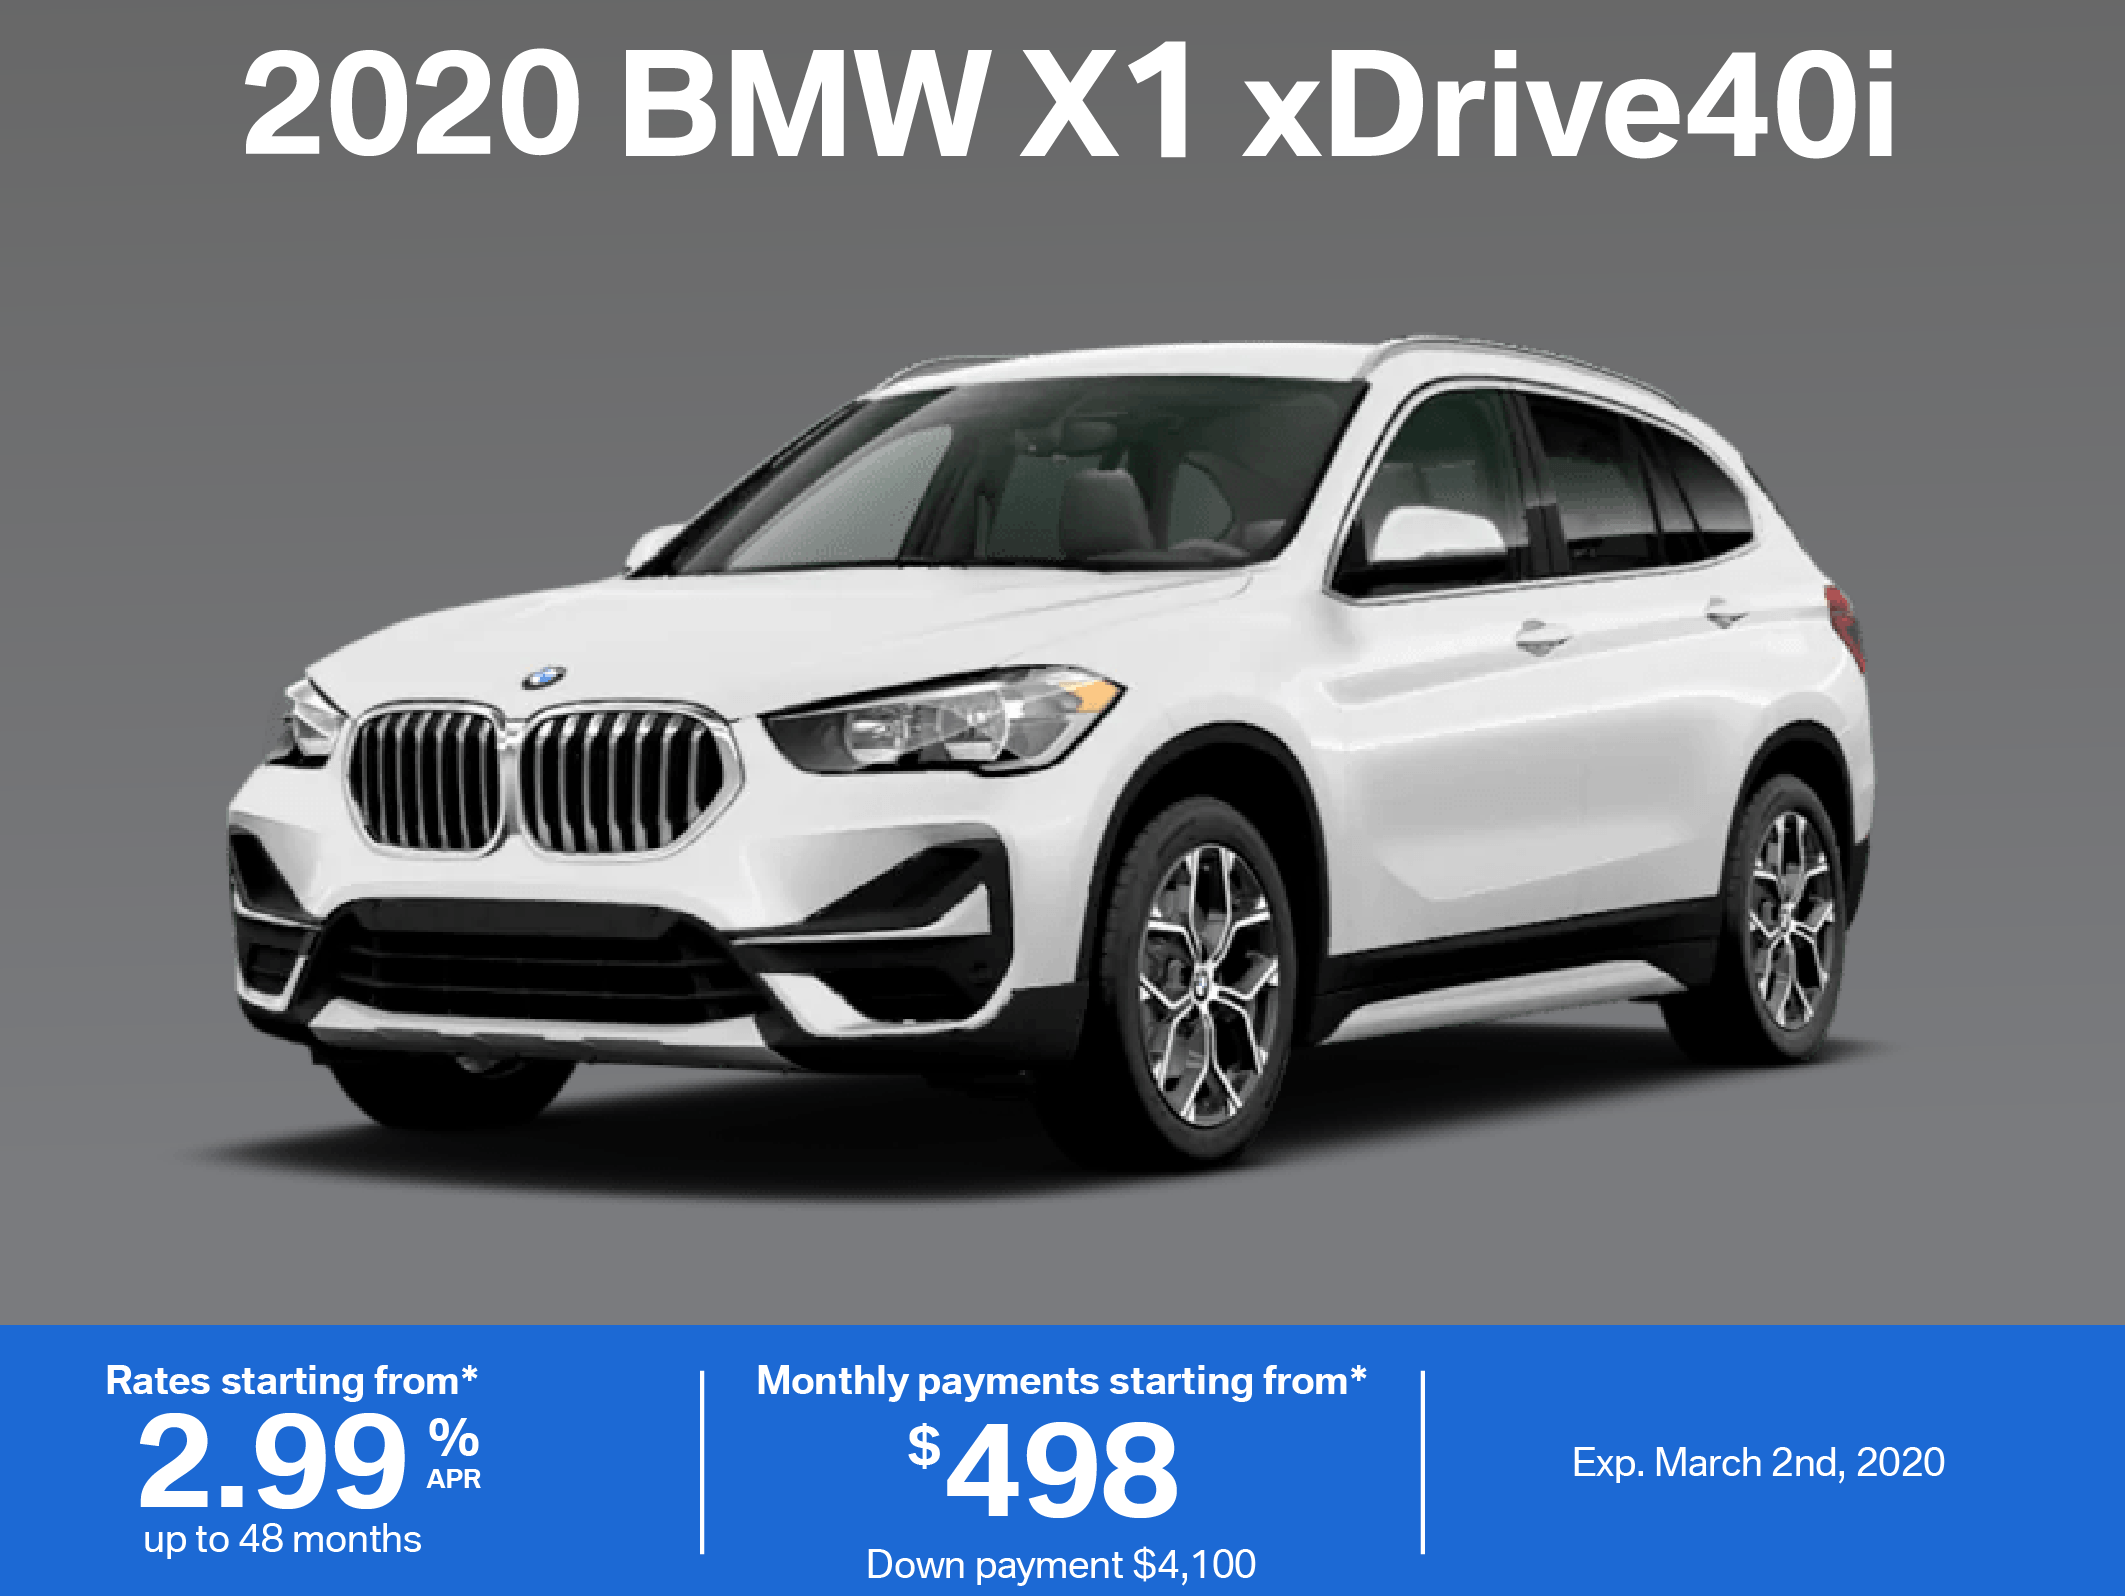 Lease the 2020 BMW X1 xDrive40i